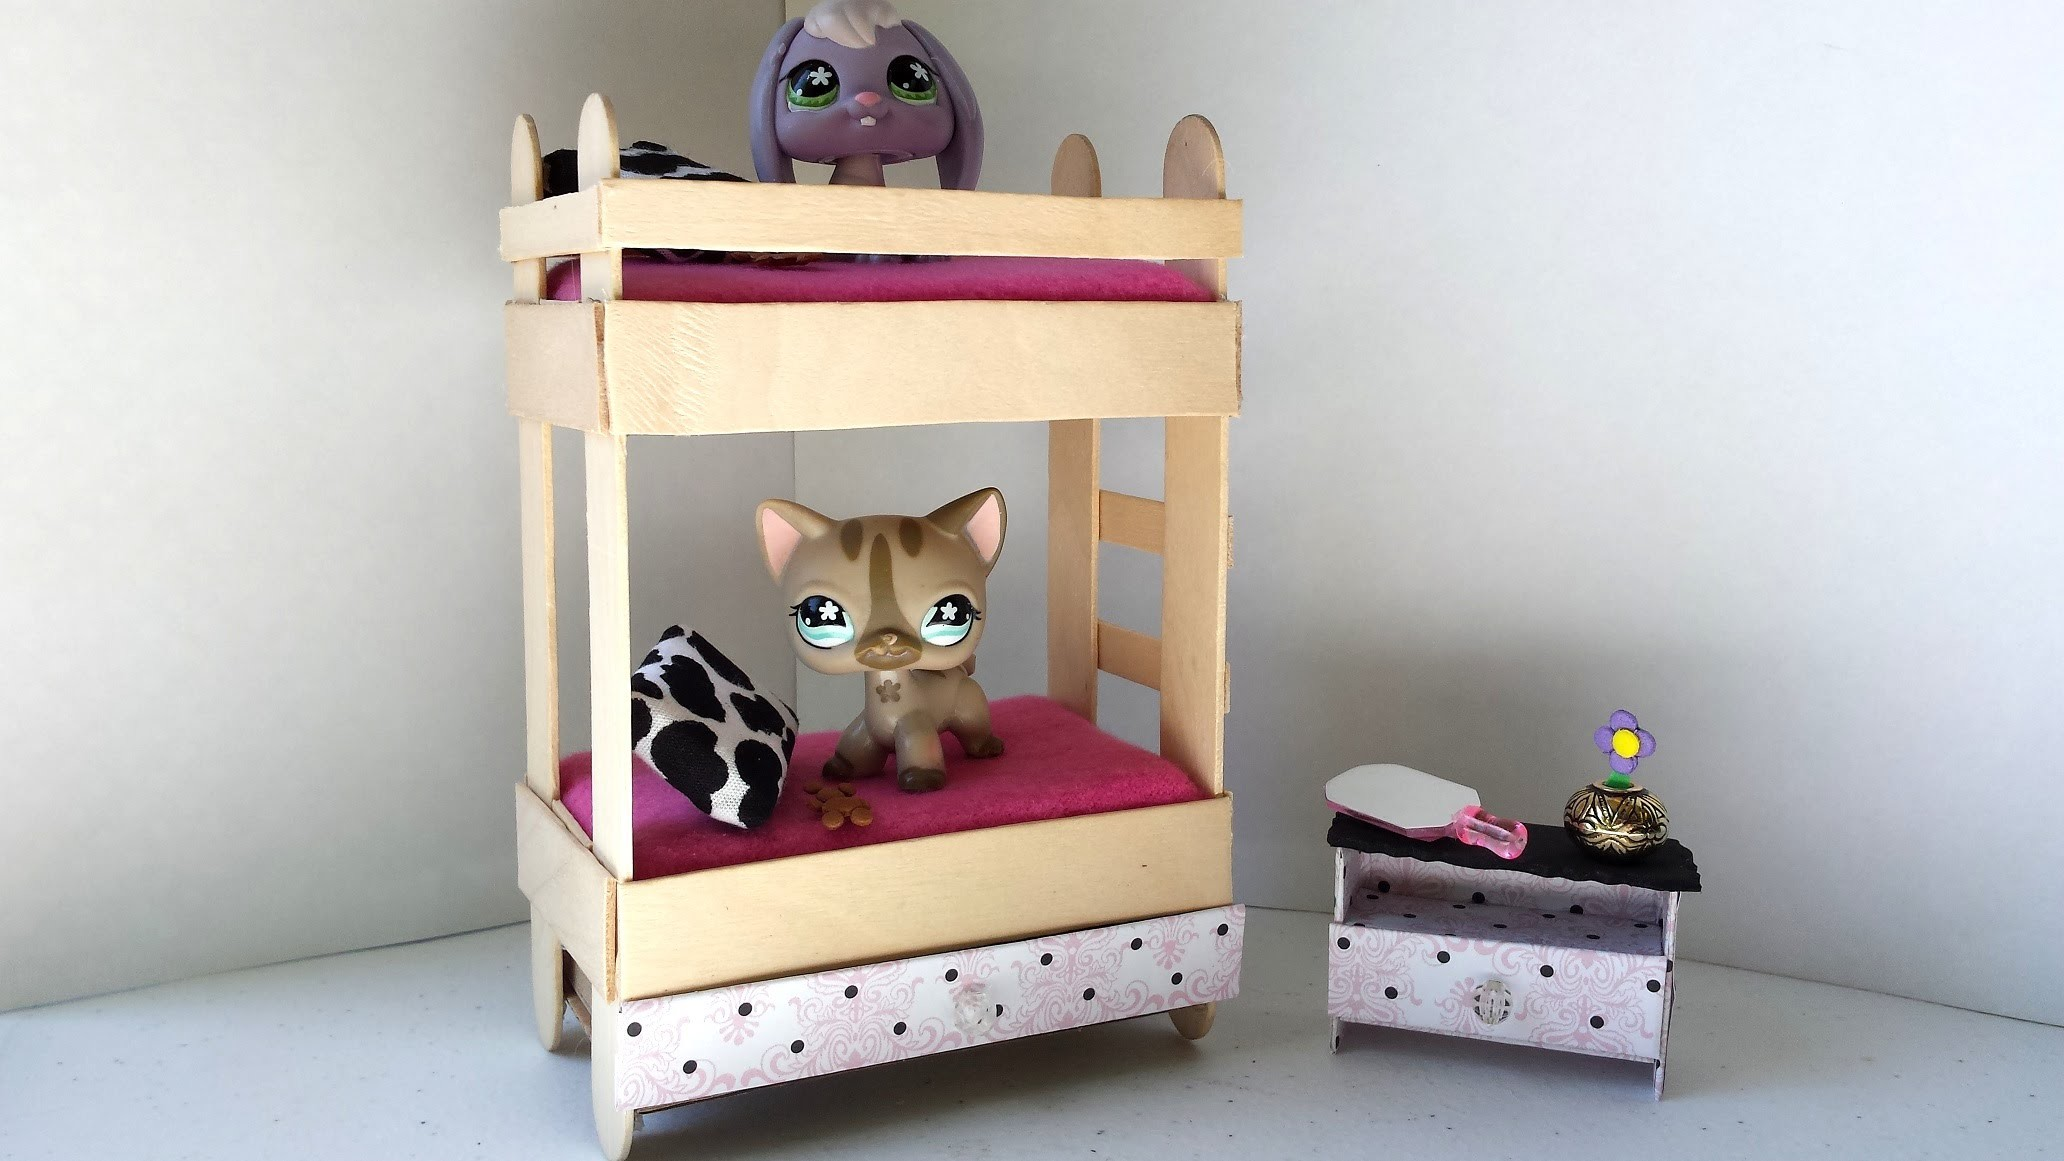 How to Make a Tiny Bunk Bed with Drawer for LPS: Littlest Pet Shop Doll DIY Accessories